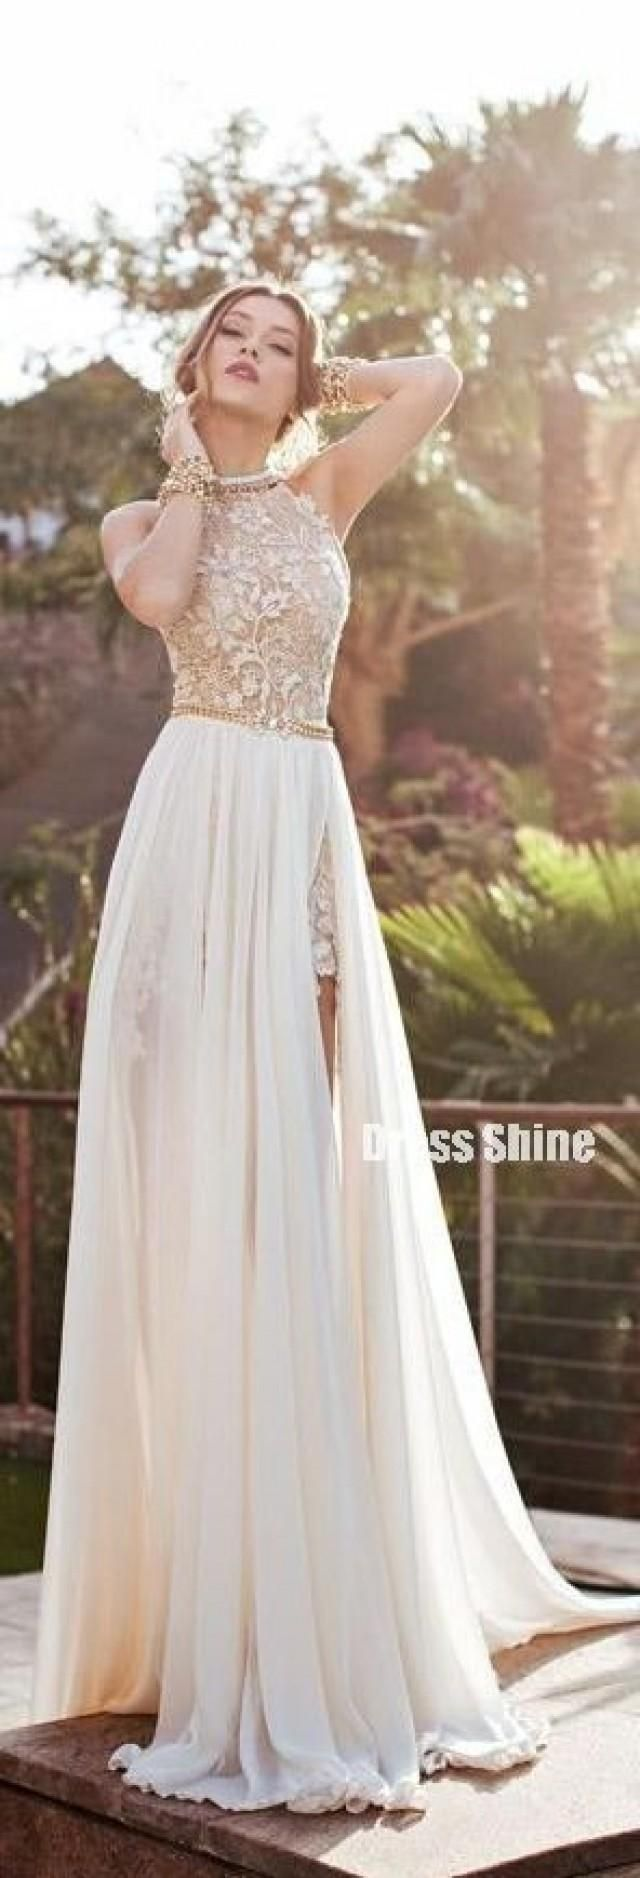 Wedding dresses gorgeous gowns pinterest wedding dress